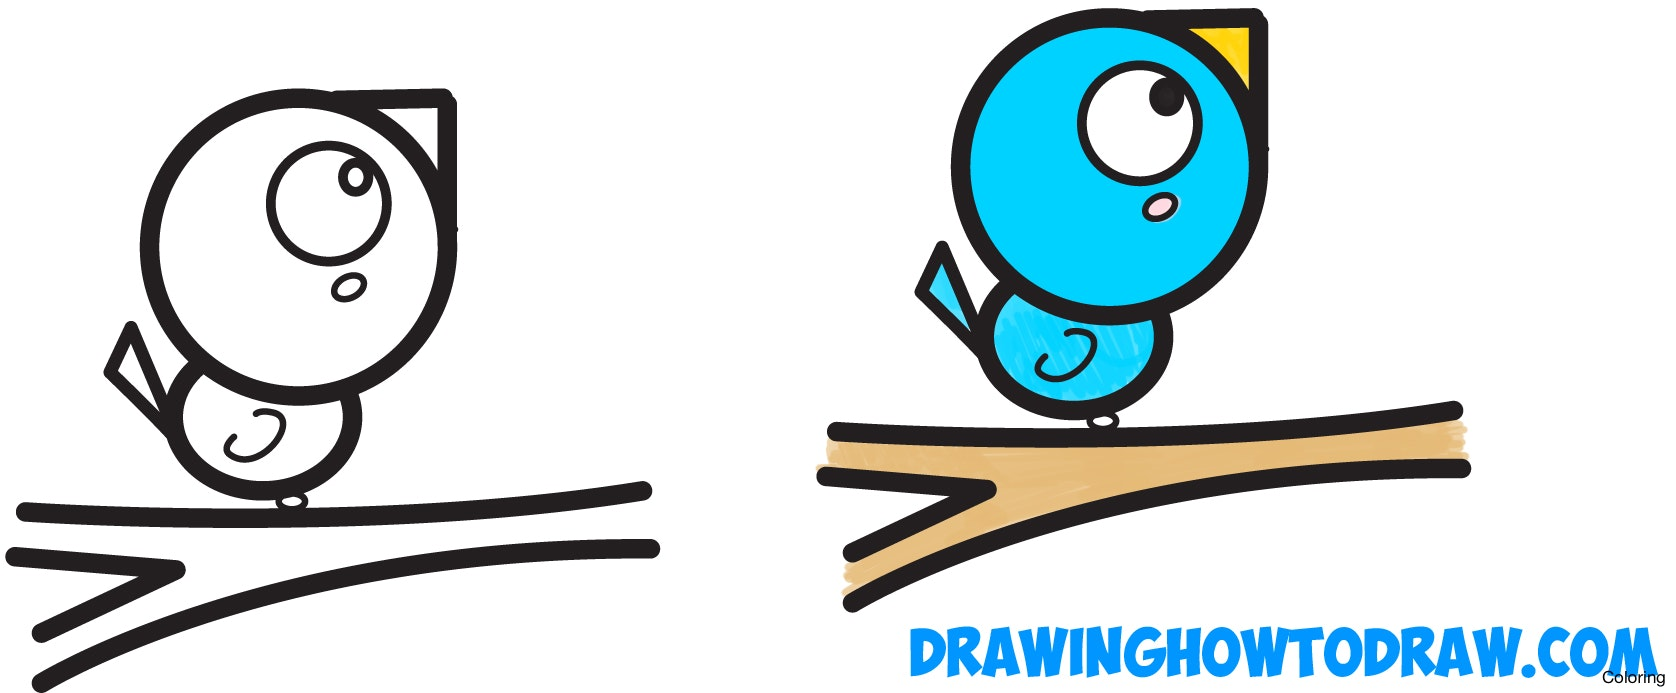 1676x693 Simple Birds Drawings For Kids Easy To Draw Love Designs How